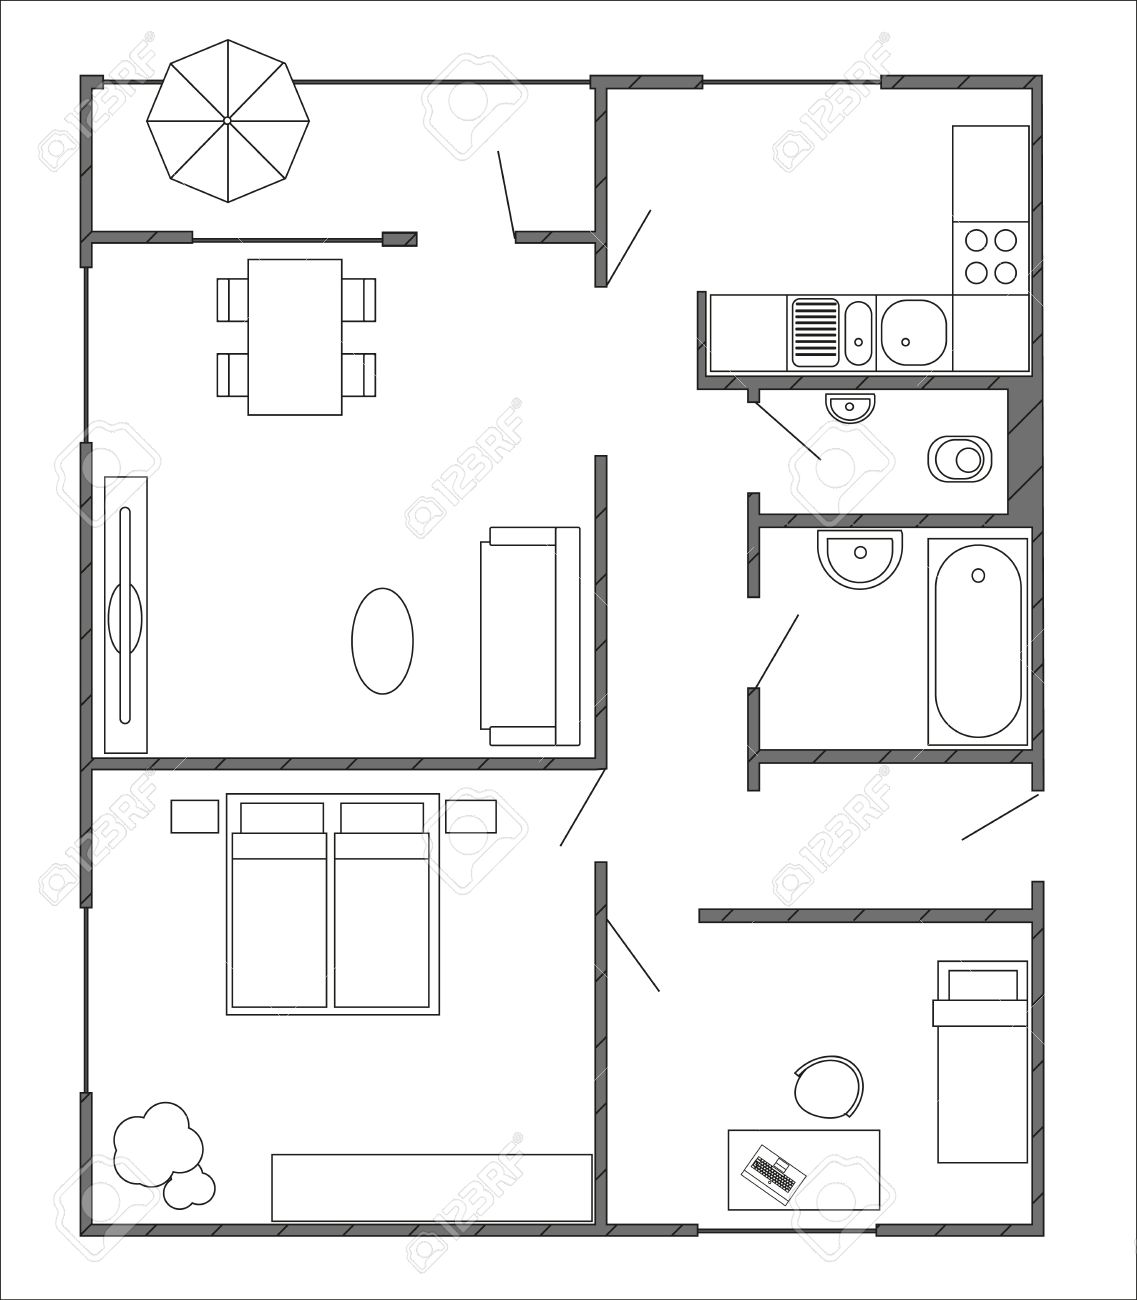 architecture plan with furniture in top view of 3 rooms apartment architecture plan with furniture in top view of 3 rooms apartment with balcony modern